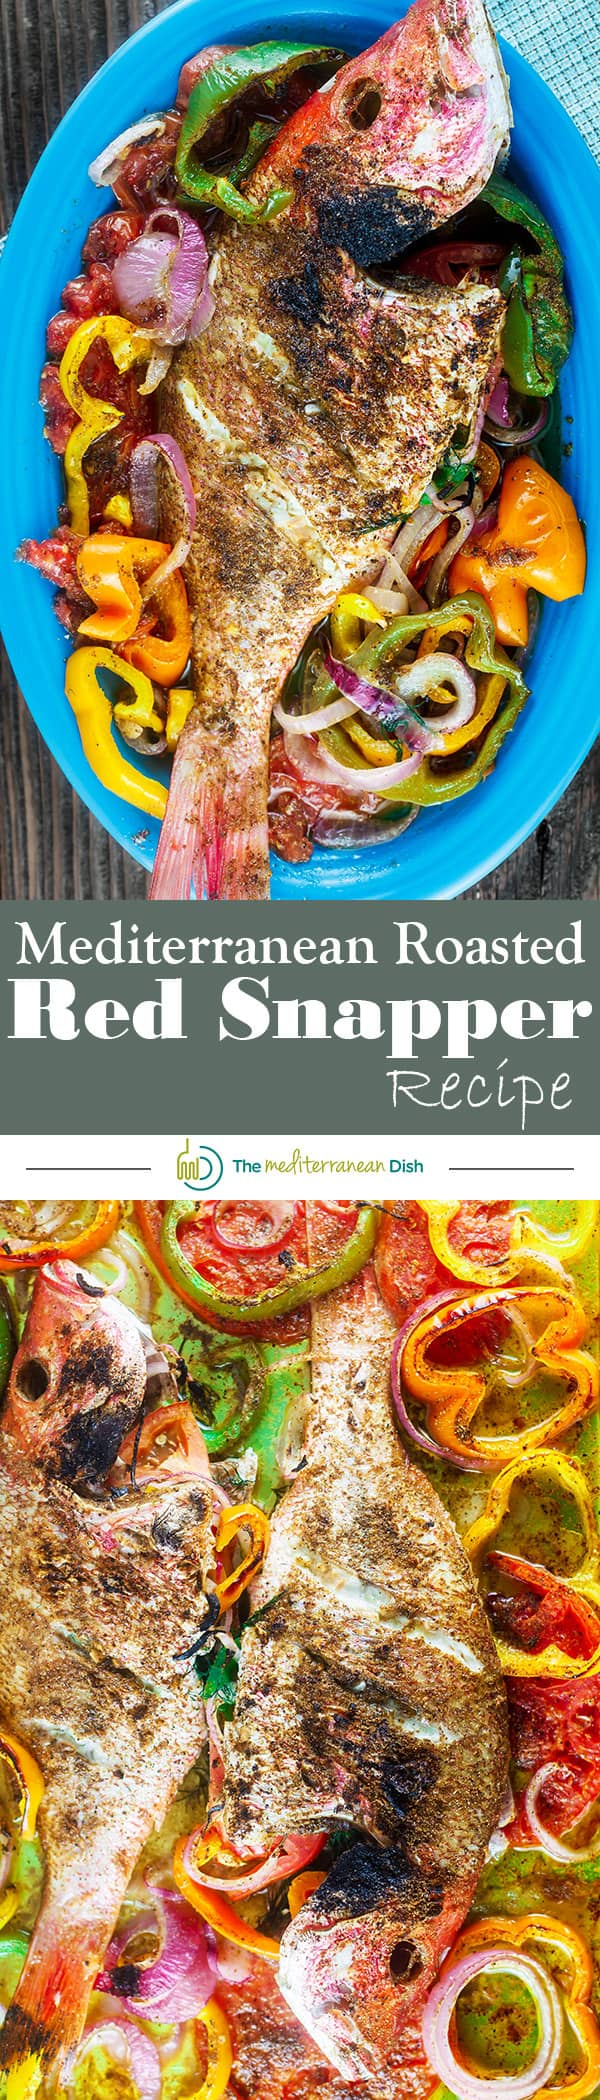 Mediterranean Whole Roasted Red Snapper with Garlic and Bell Peppers | The Mediterranean Dish. An easy recipe your family will love! Whole snapper stuffed with fresh garlic, dill, bell peppers, tomatoes and onions and roasted to perfection. Add a salad or a quick rice and you're good to go! Ready in 30 minutes!